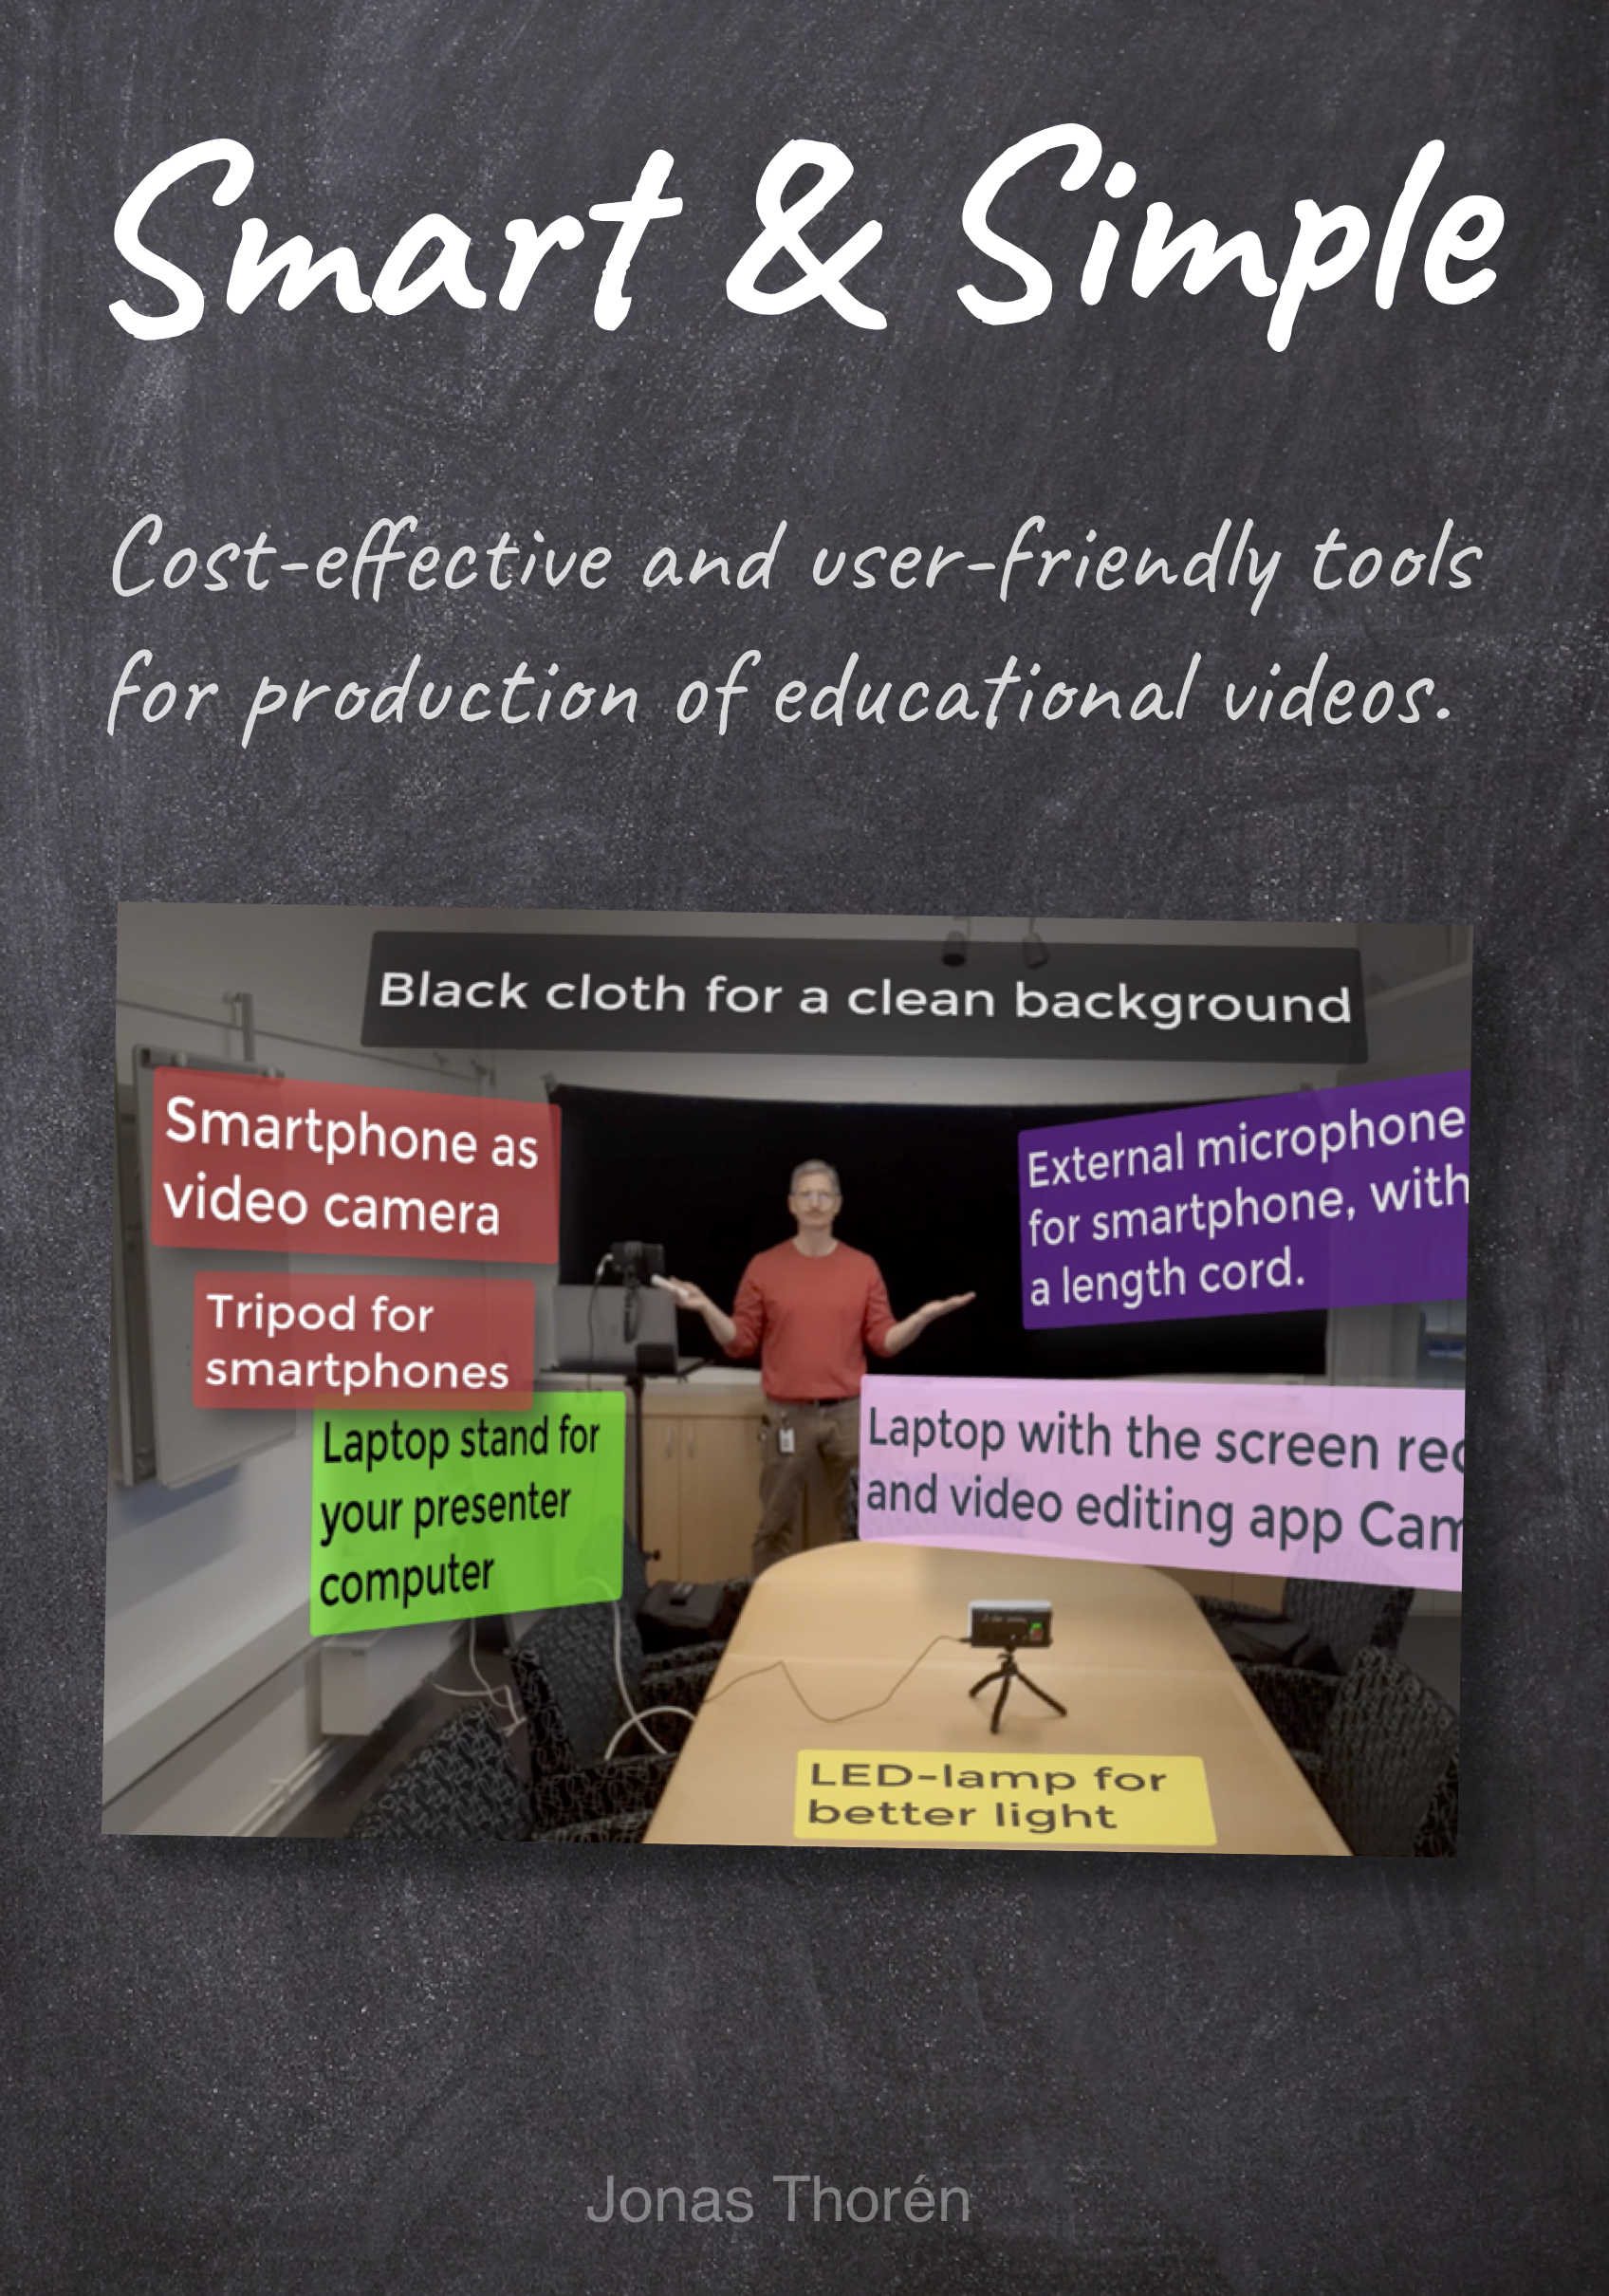 smart and simple - cost-effective and user-friendly tools for production of educational videos copy.png